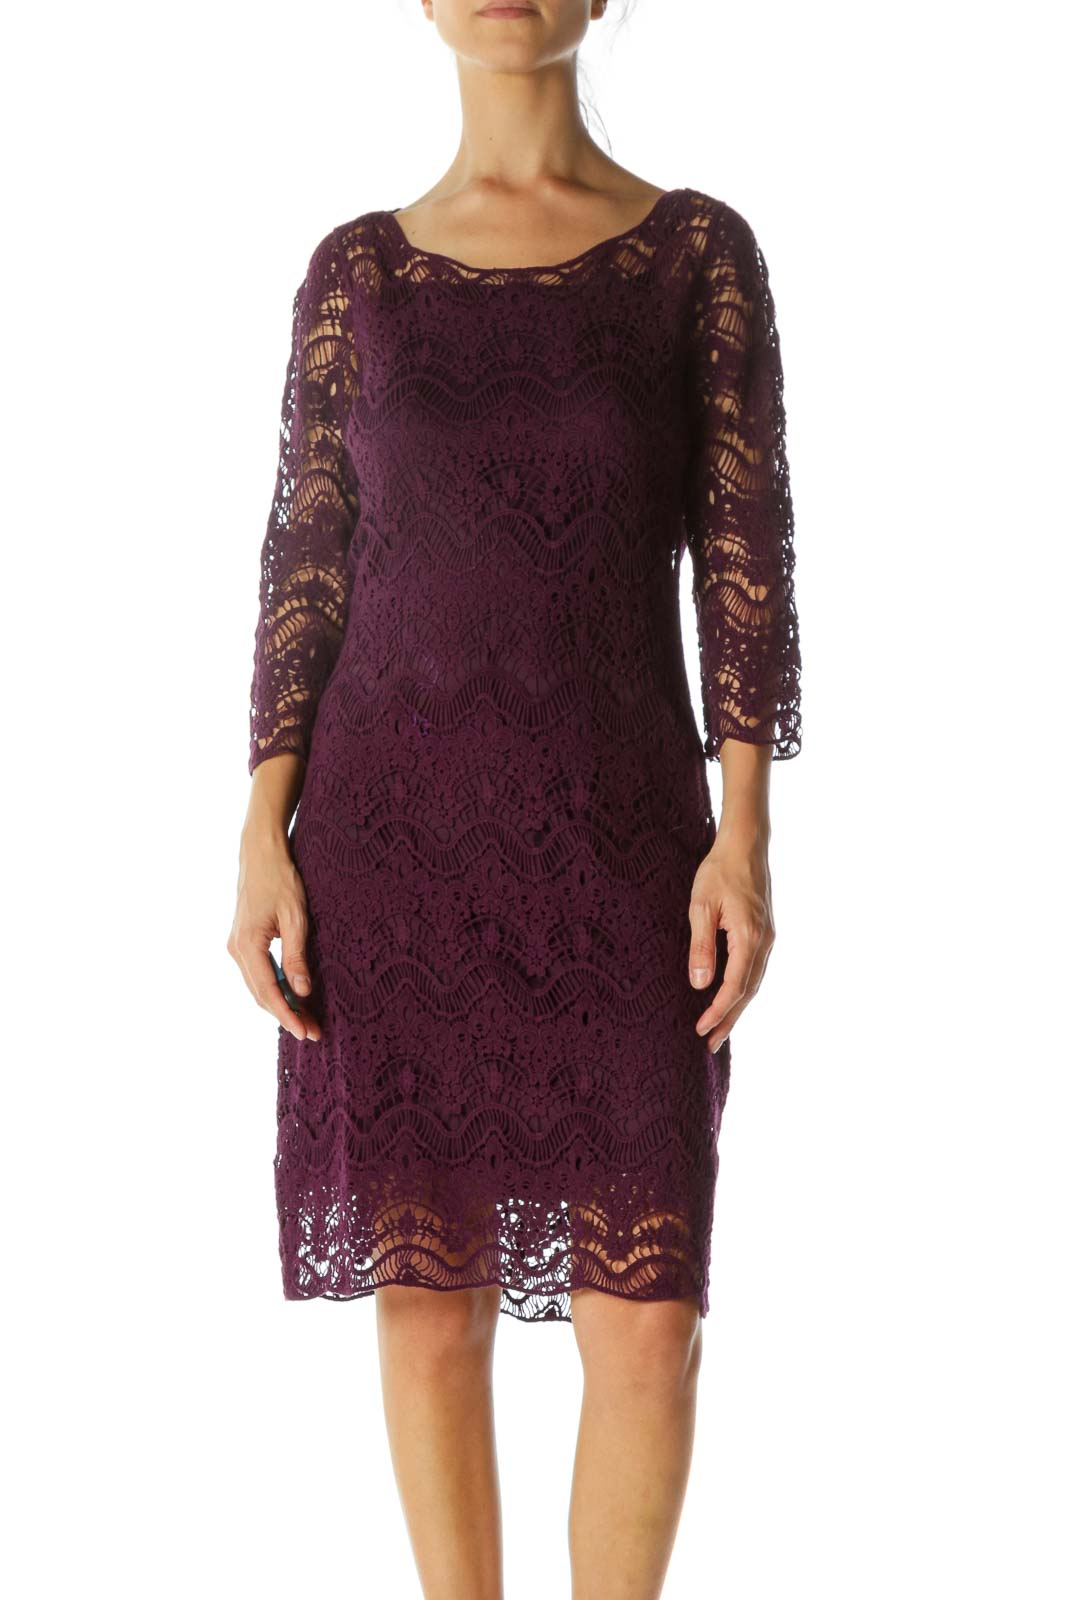 Purple Lace Cotton-Knit 3/4 Sleeve Knit Dress